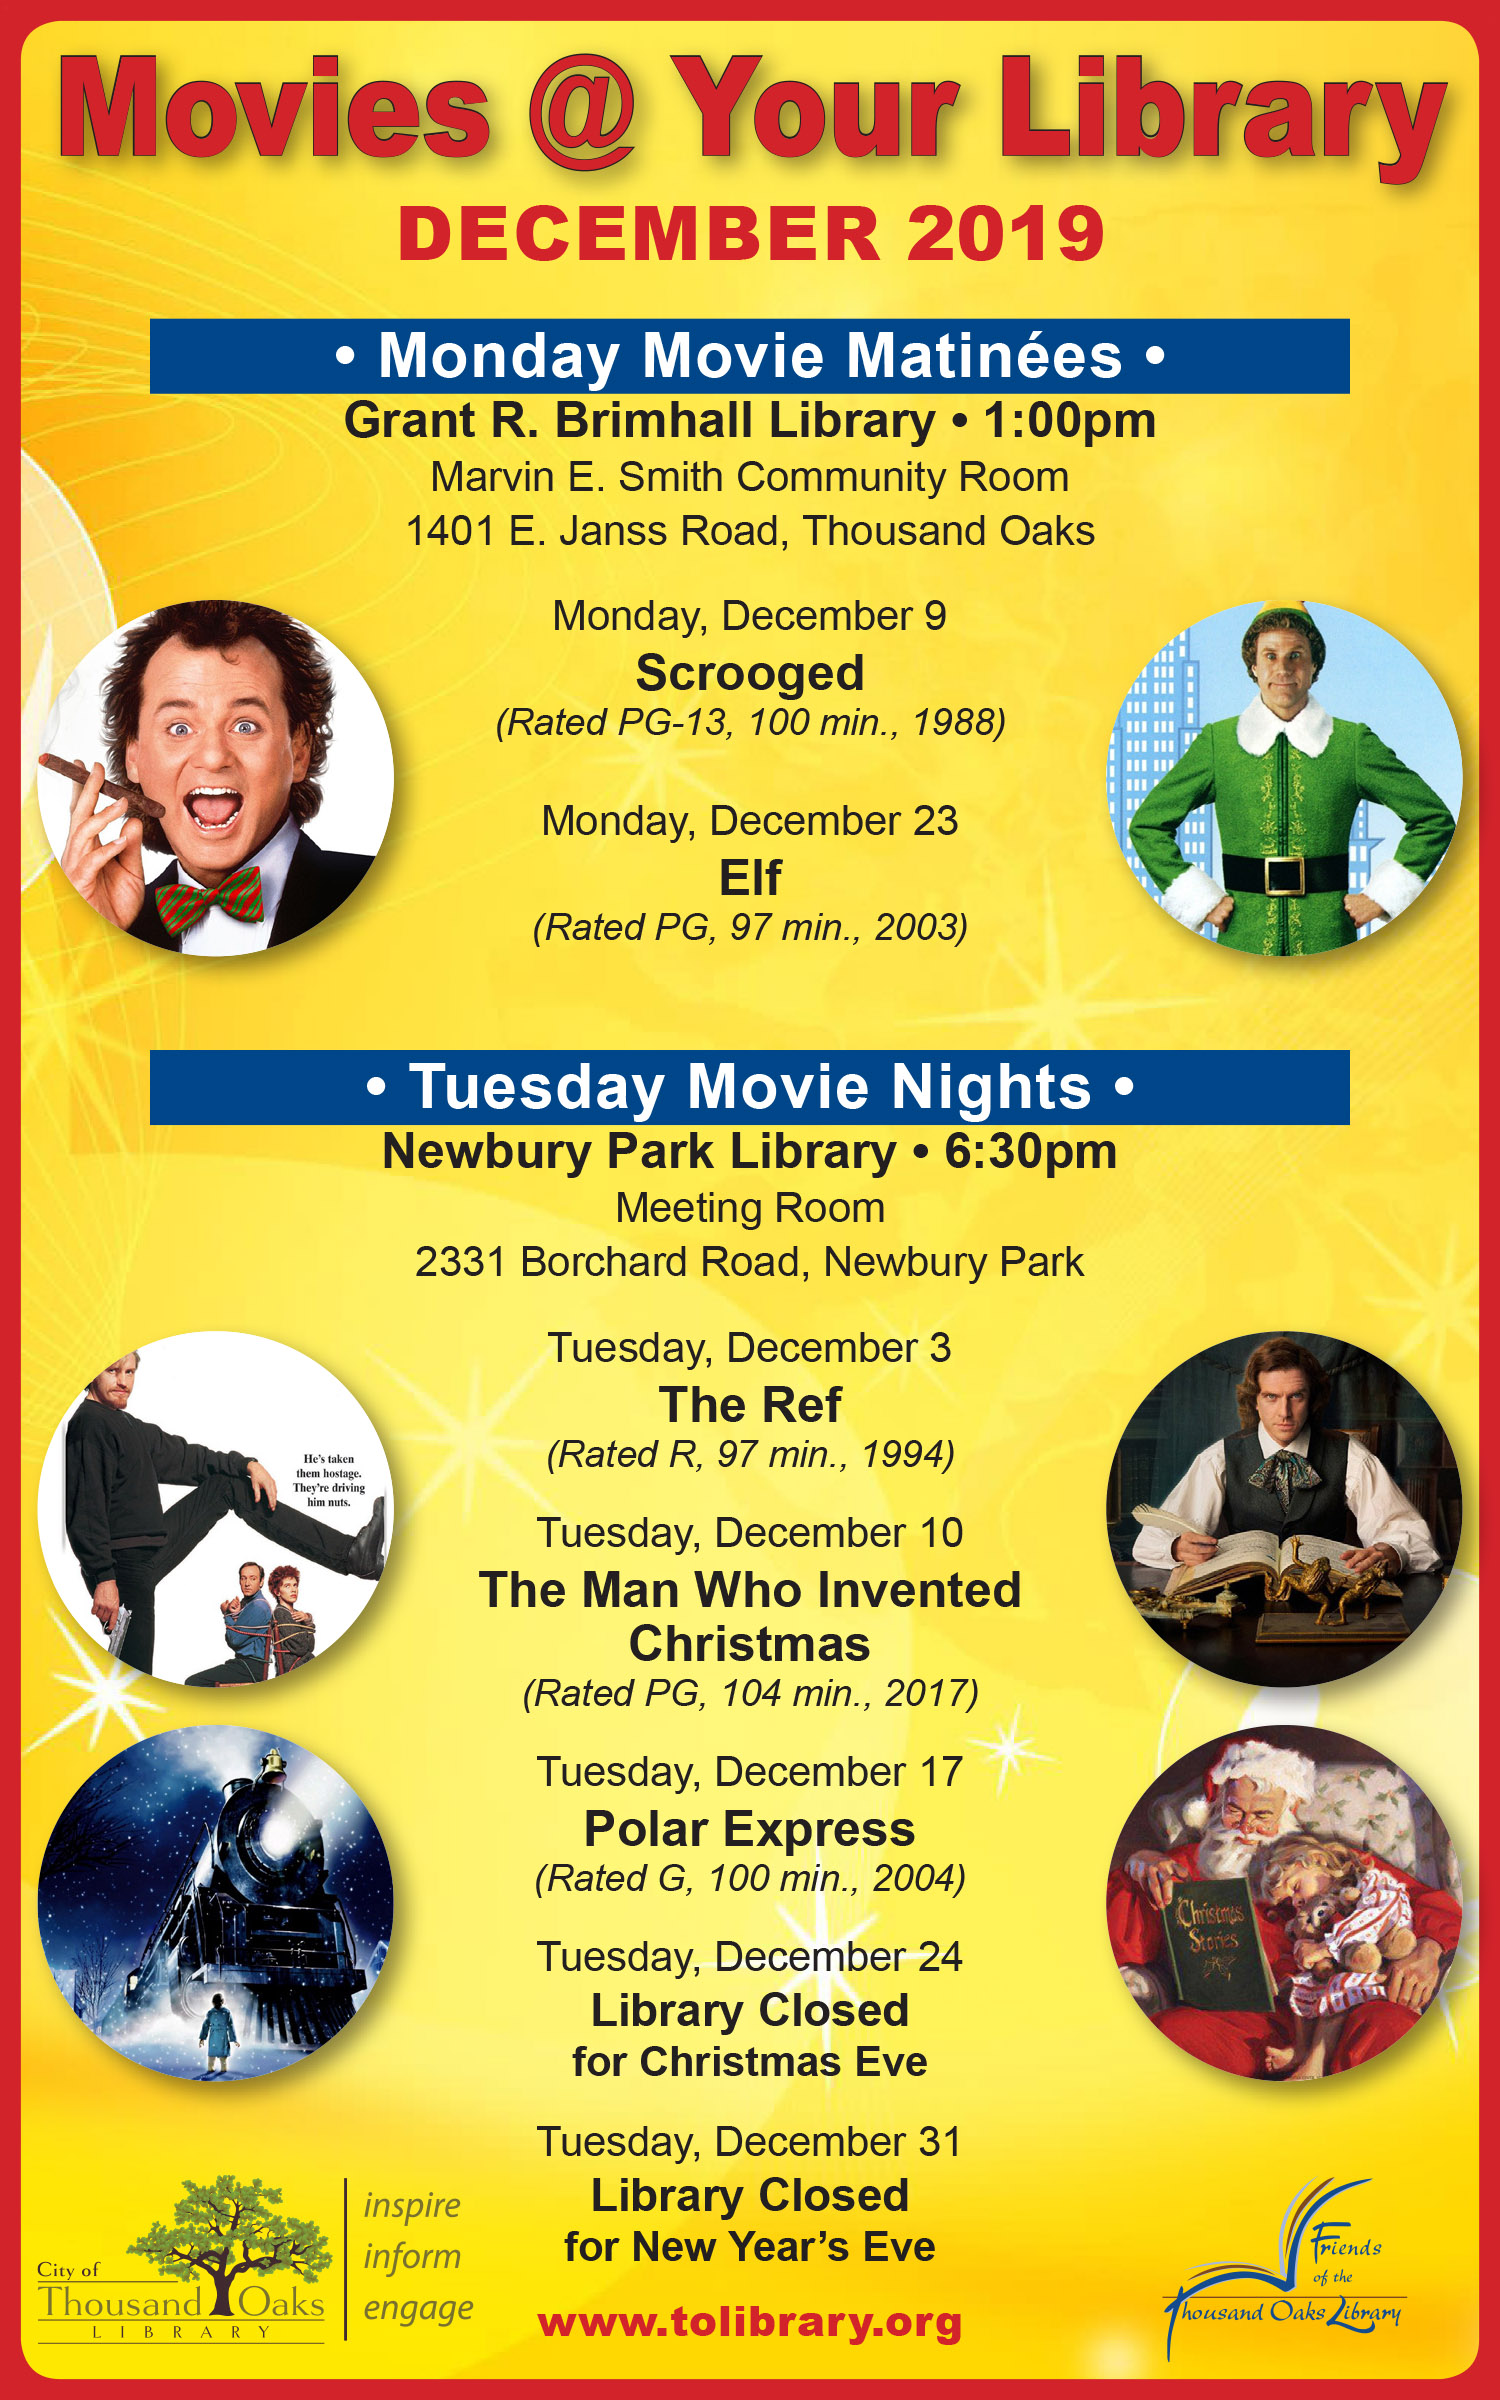 Movies @ Your Library - Dec 2019